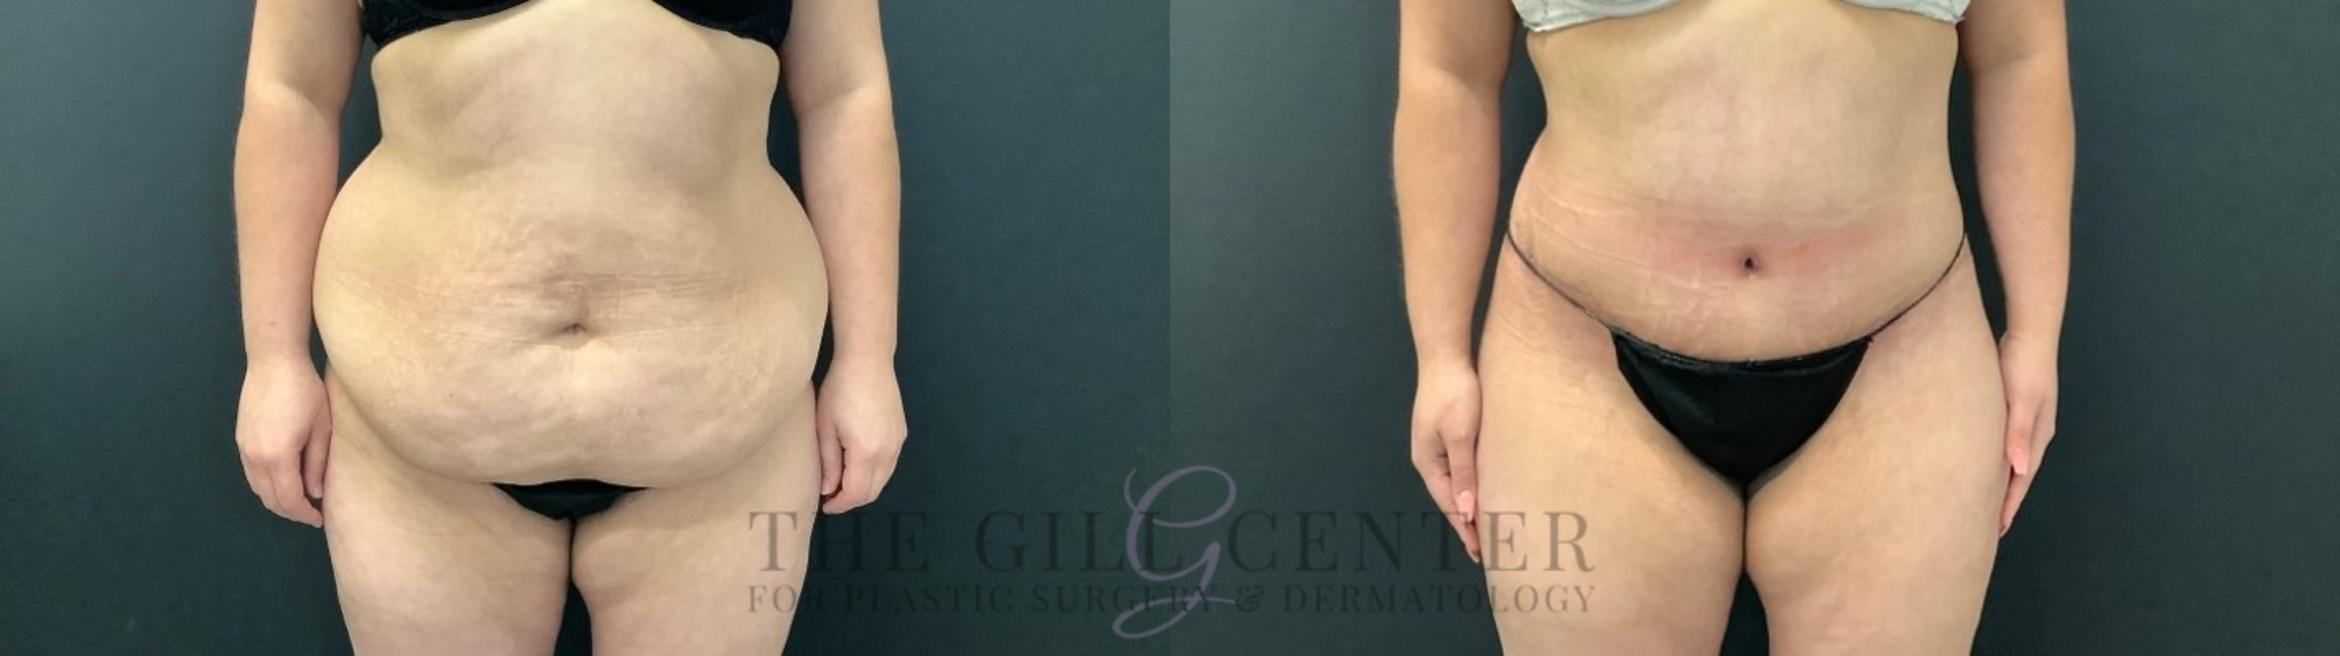 Tummy Tuck Case 468 Before & After Front | The Woodlands, TX | The Gill Center for Plastic Surgery and Dermatology